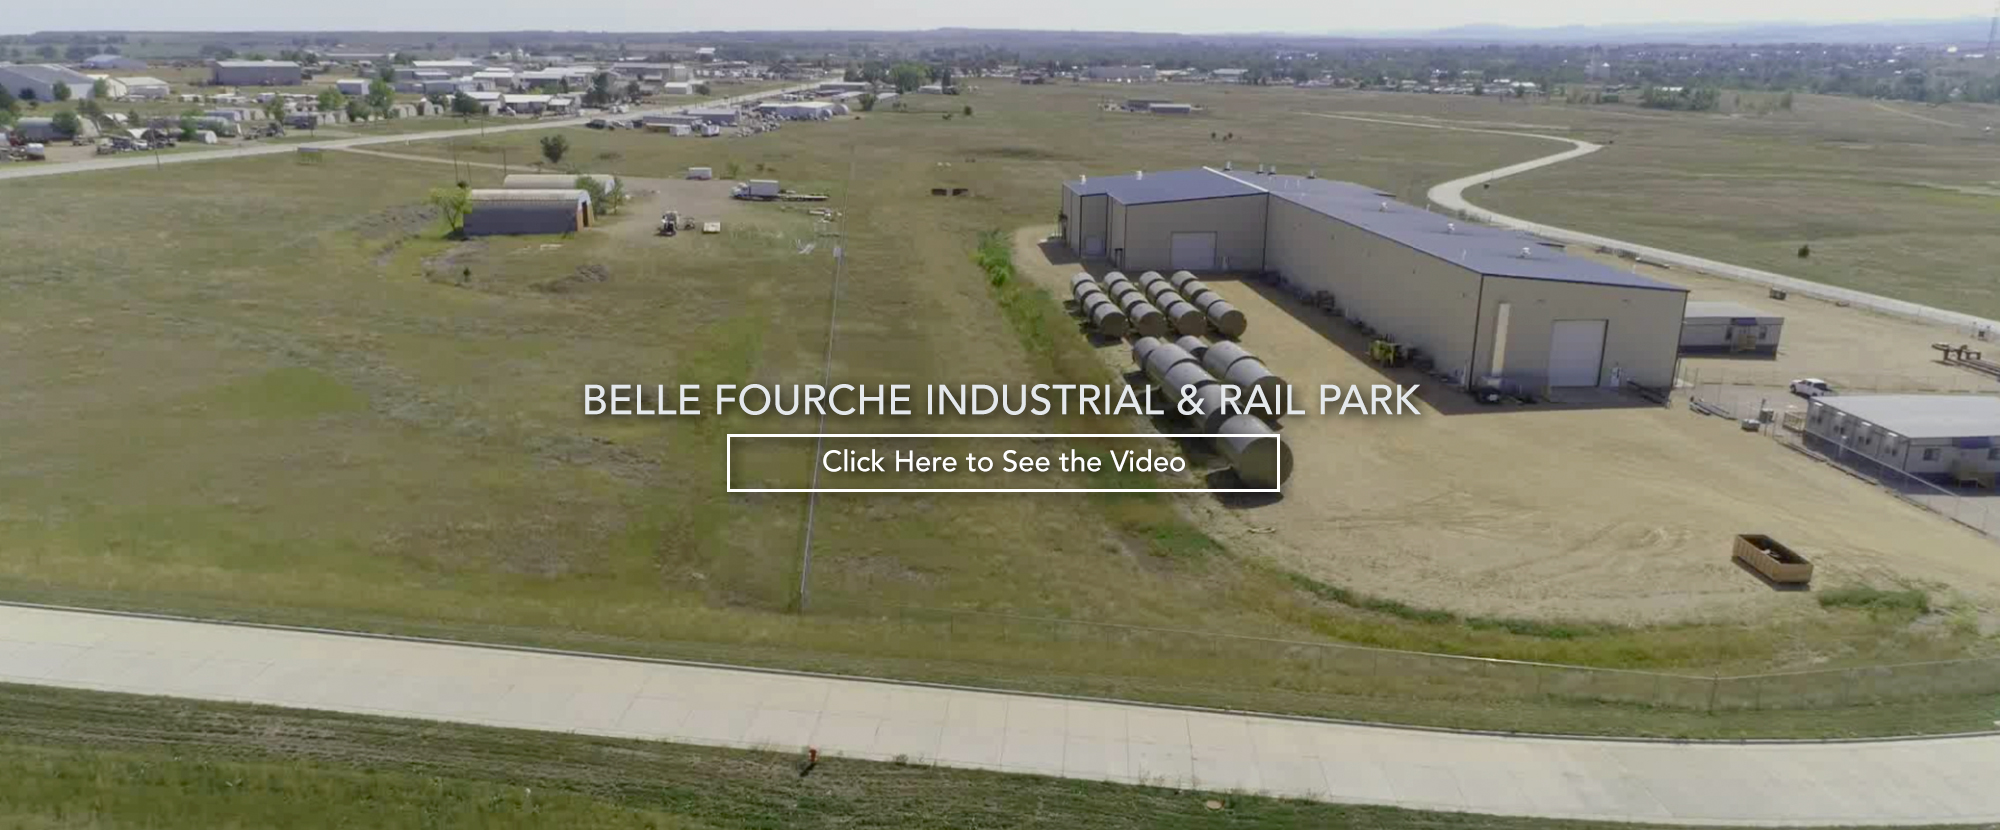 Belle Fourche Industrial & Rail Park. Click Here to See the Video